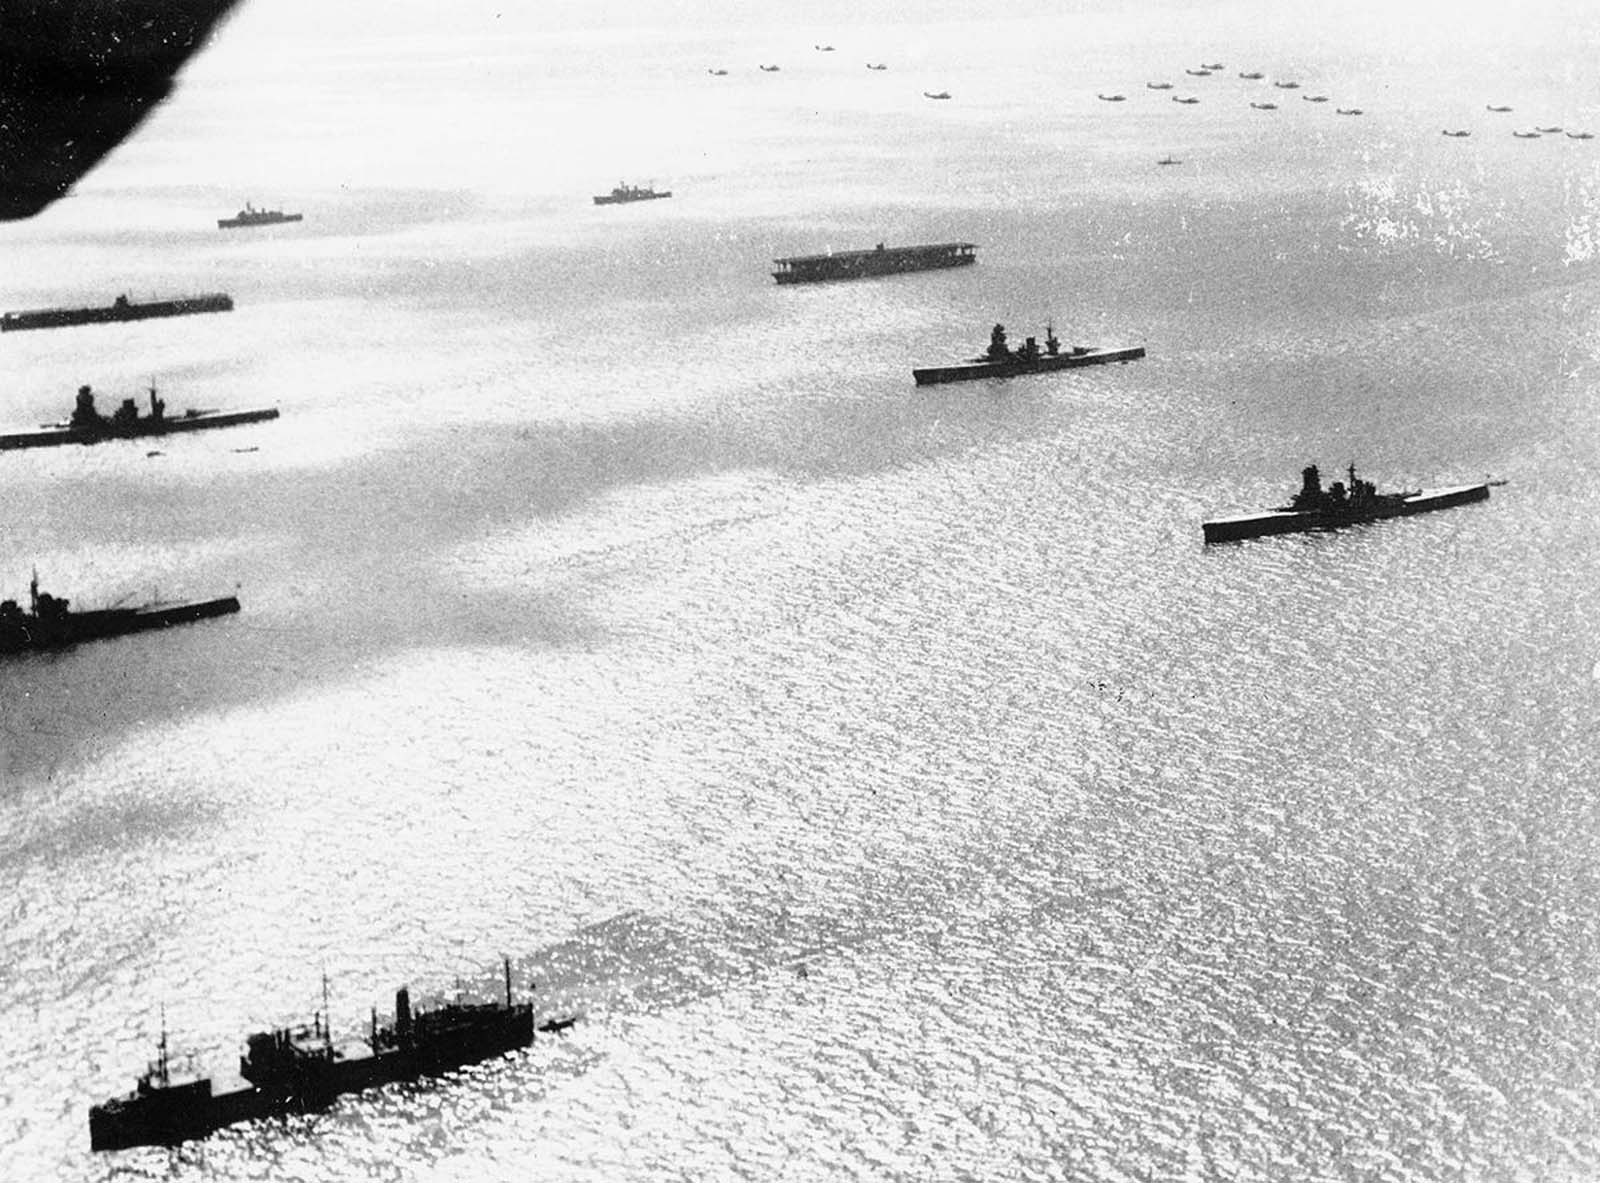 This aerial view shows Japan's home fleet, arrayed in battle line, on October 29, 1940, off the coast of Yokohama, Japan.